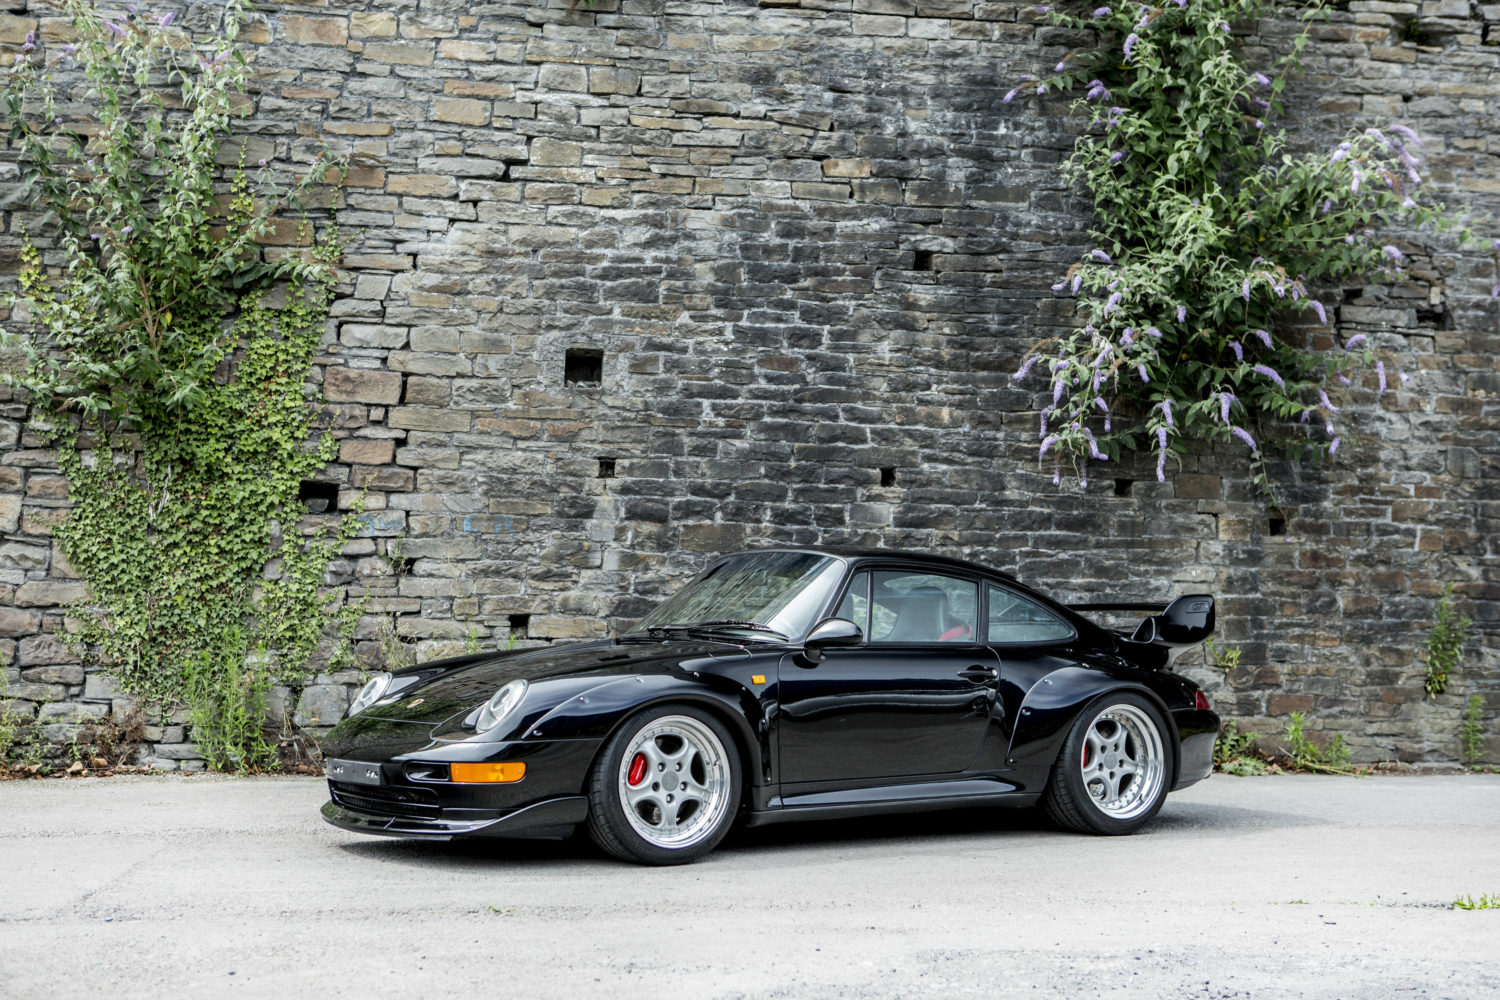 RM Sotheby's London Sale: Preview